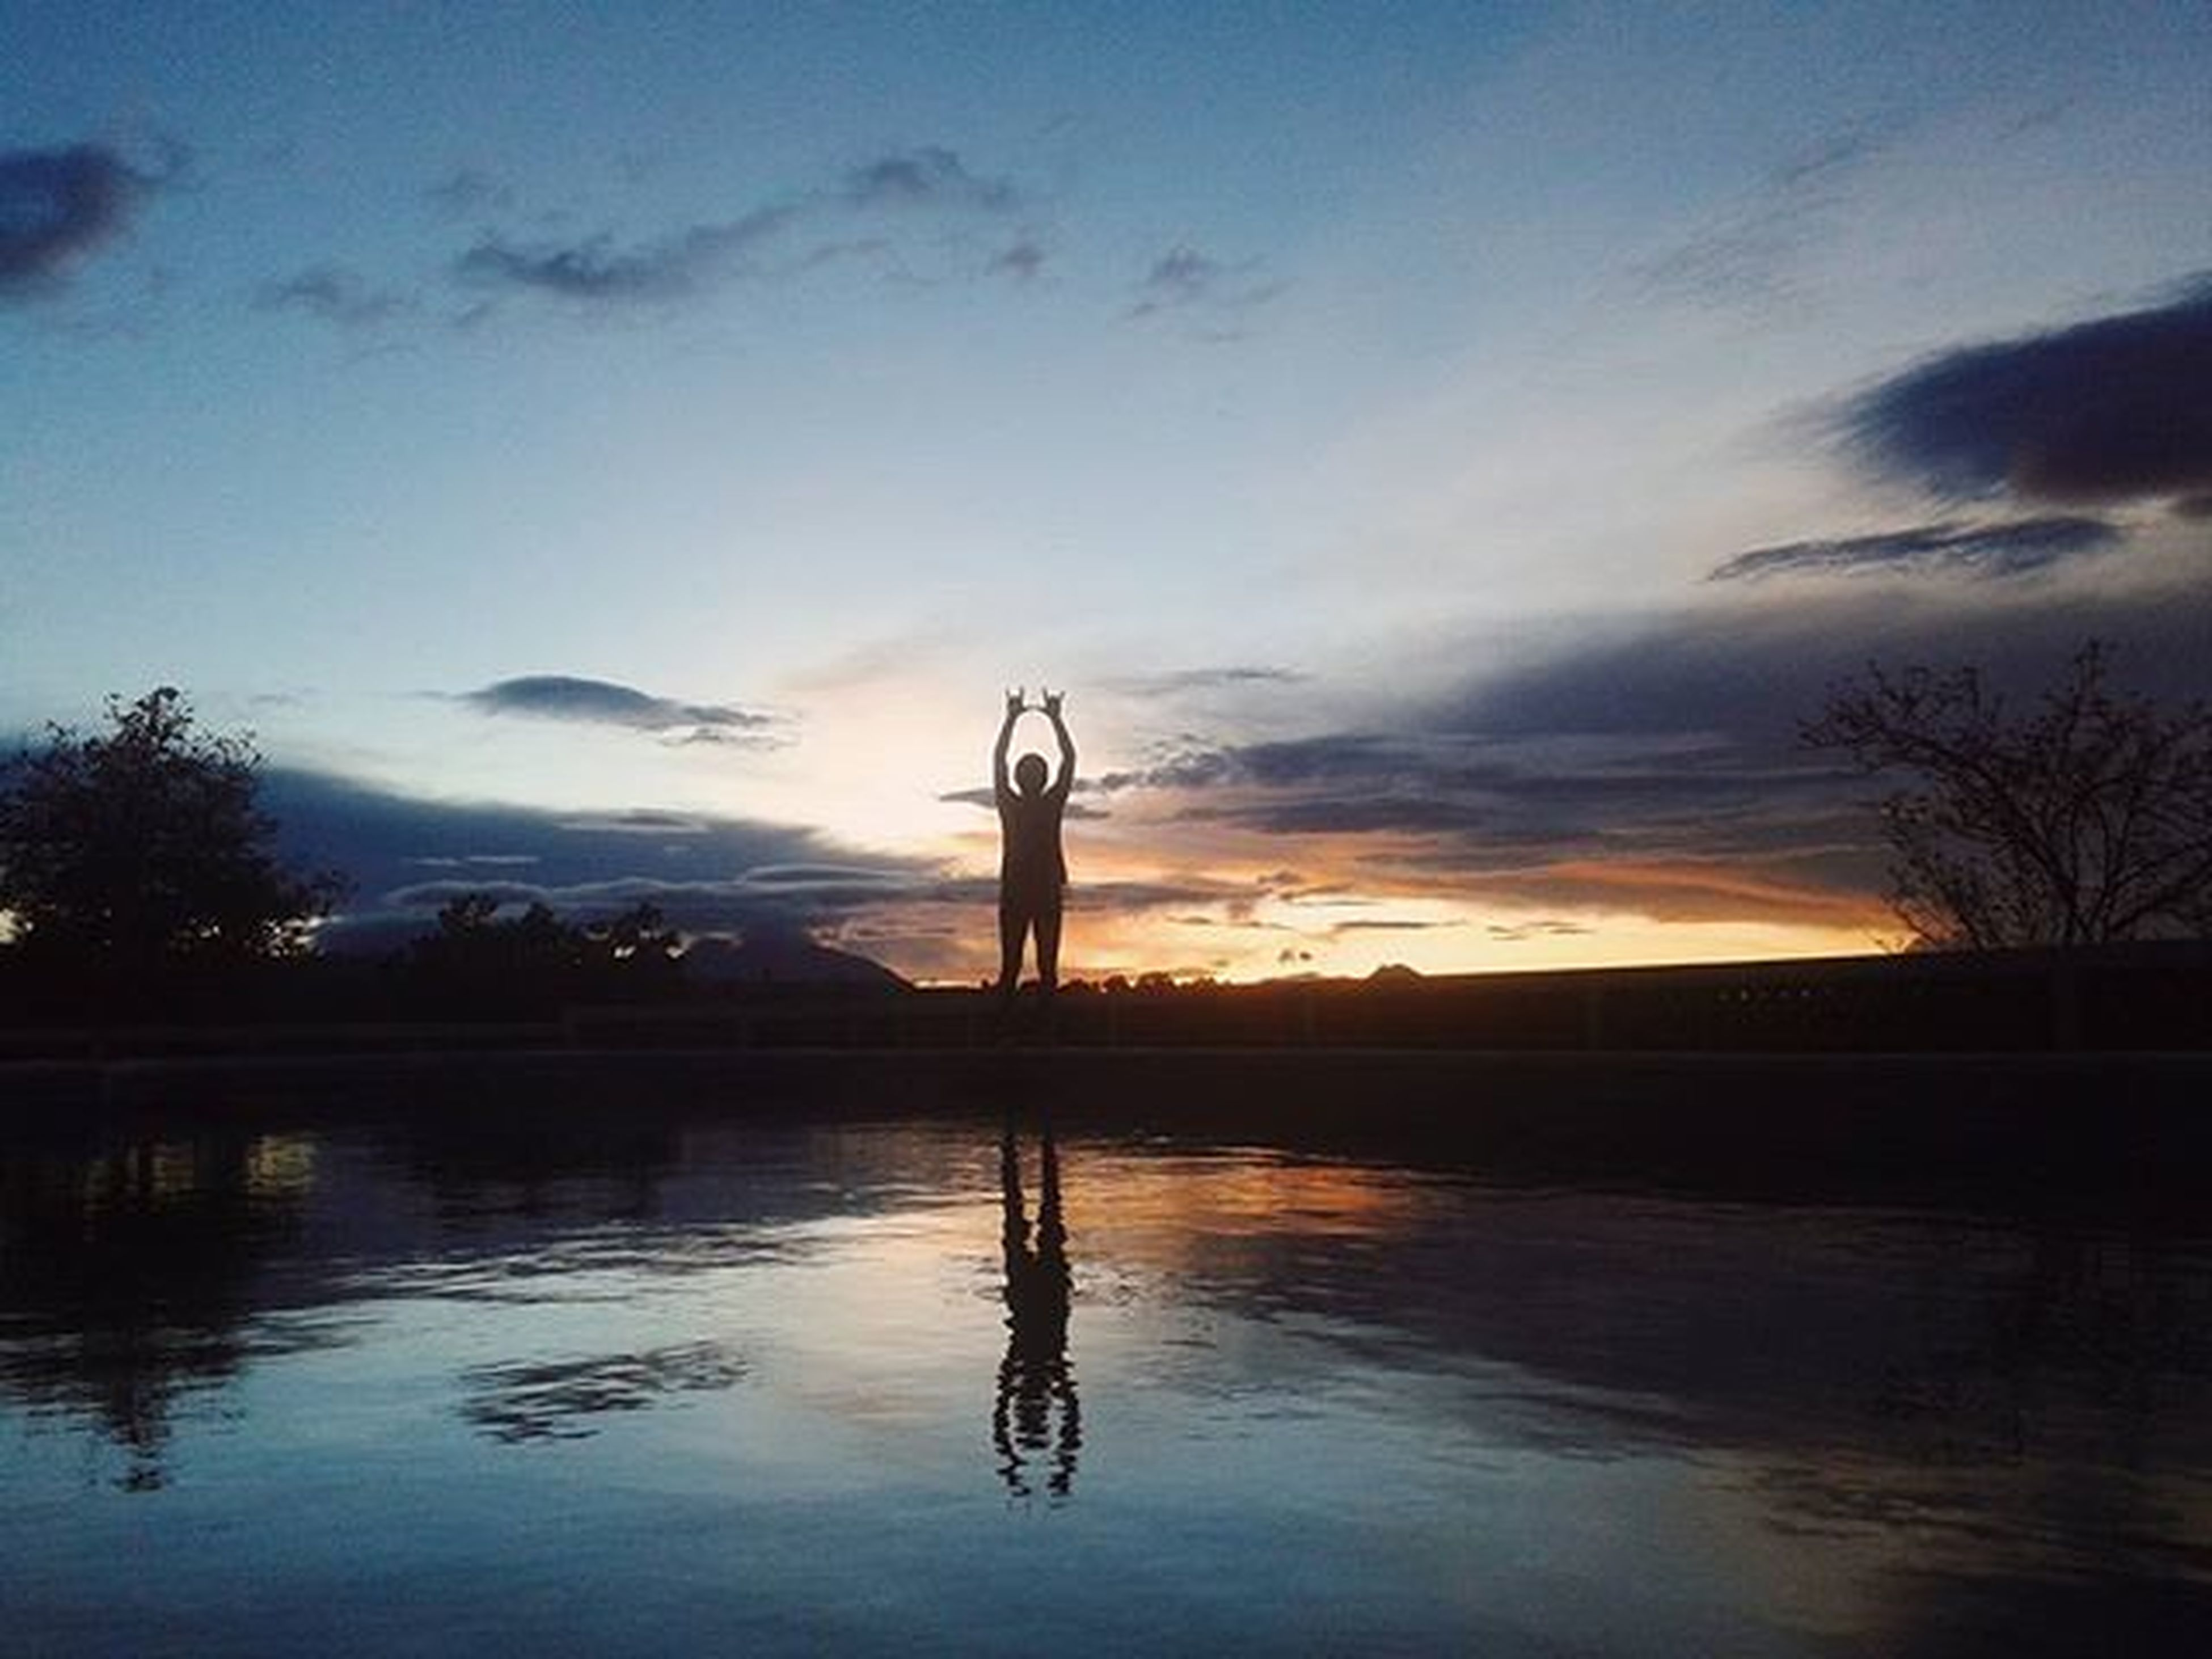 water, silhouette, sky, reflection, sunset, cloud - sky, lake, waterfront, tranquility, cloud, tranquil scene, nature, dusk, scenics, one person, built structure, statue, beauty in nature, full length, outdoors